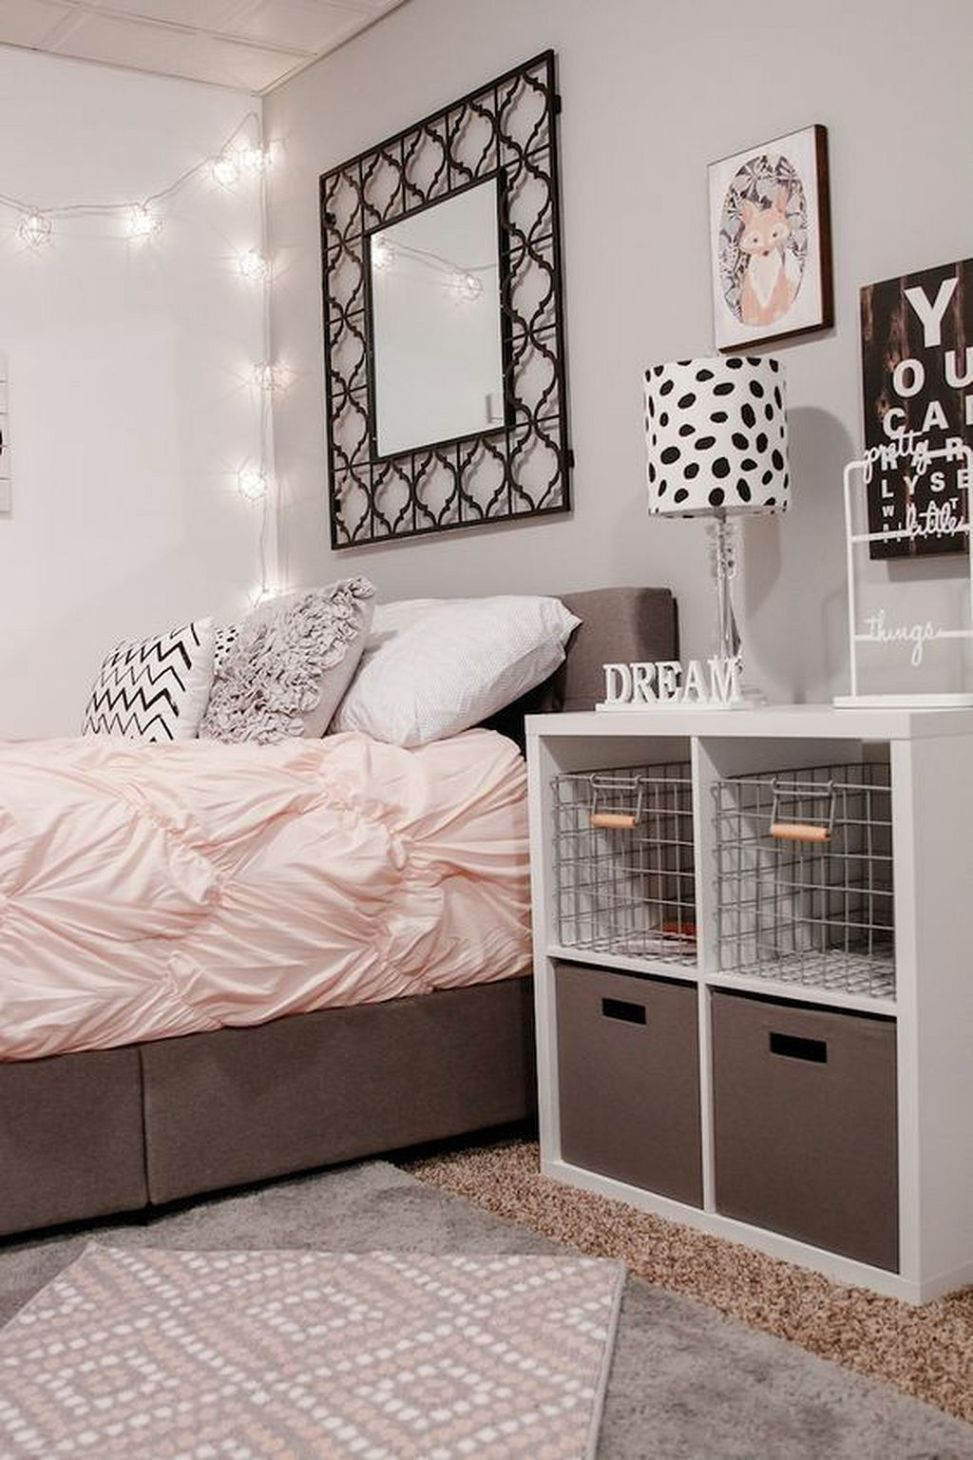 30 best teen girl bedroom ideas 15 teen bedroom ideas - Fun Teenage Girl Bedroom Ideas